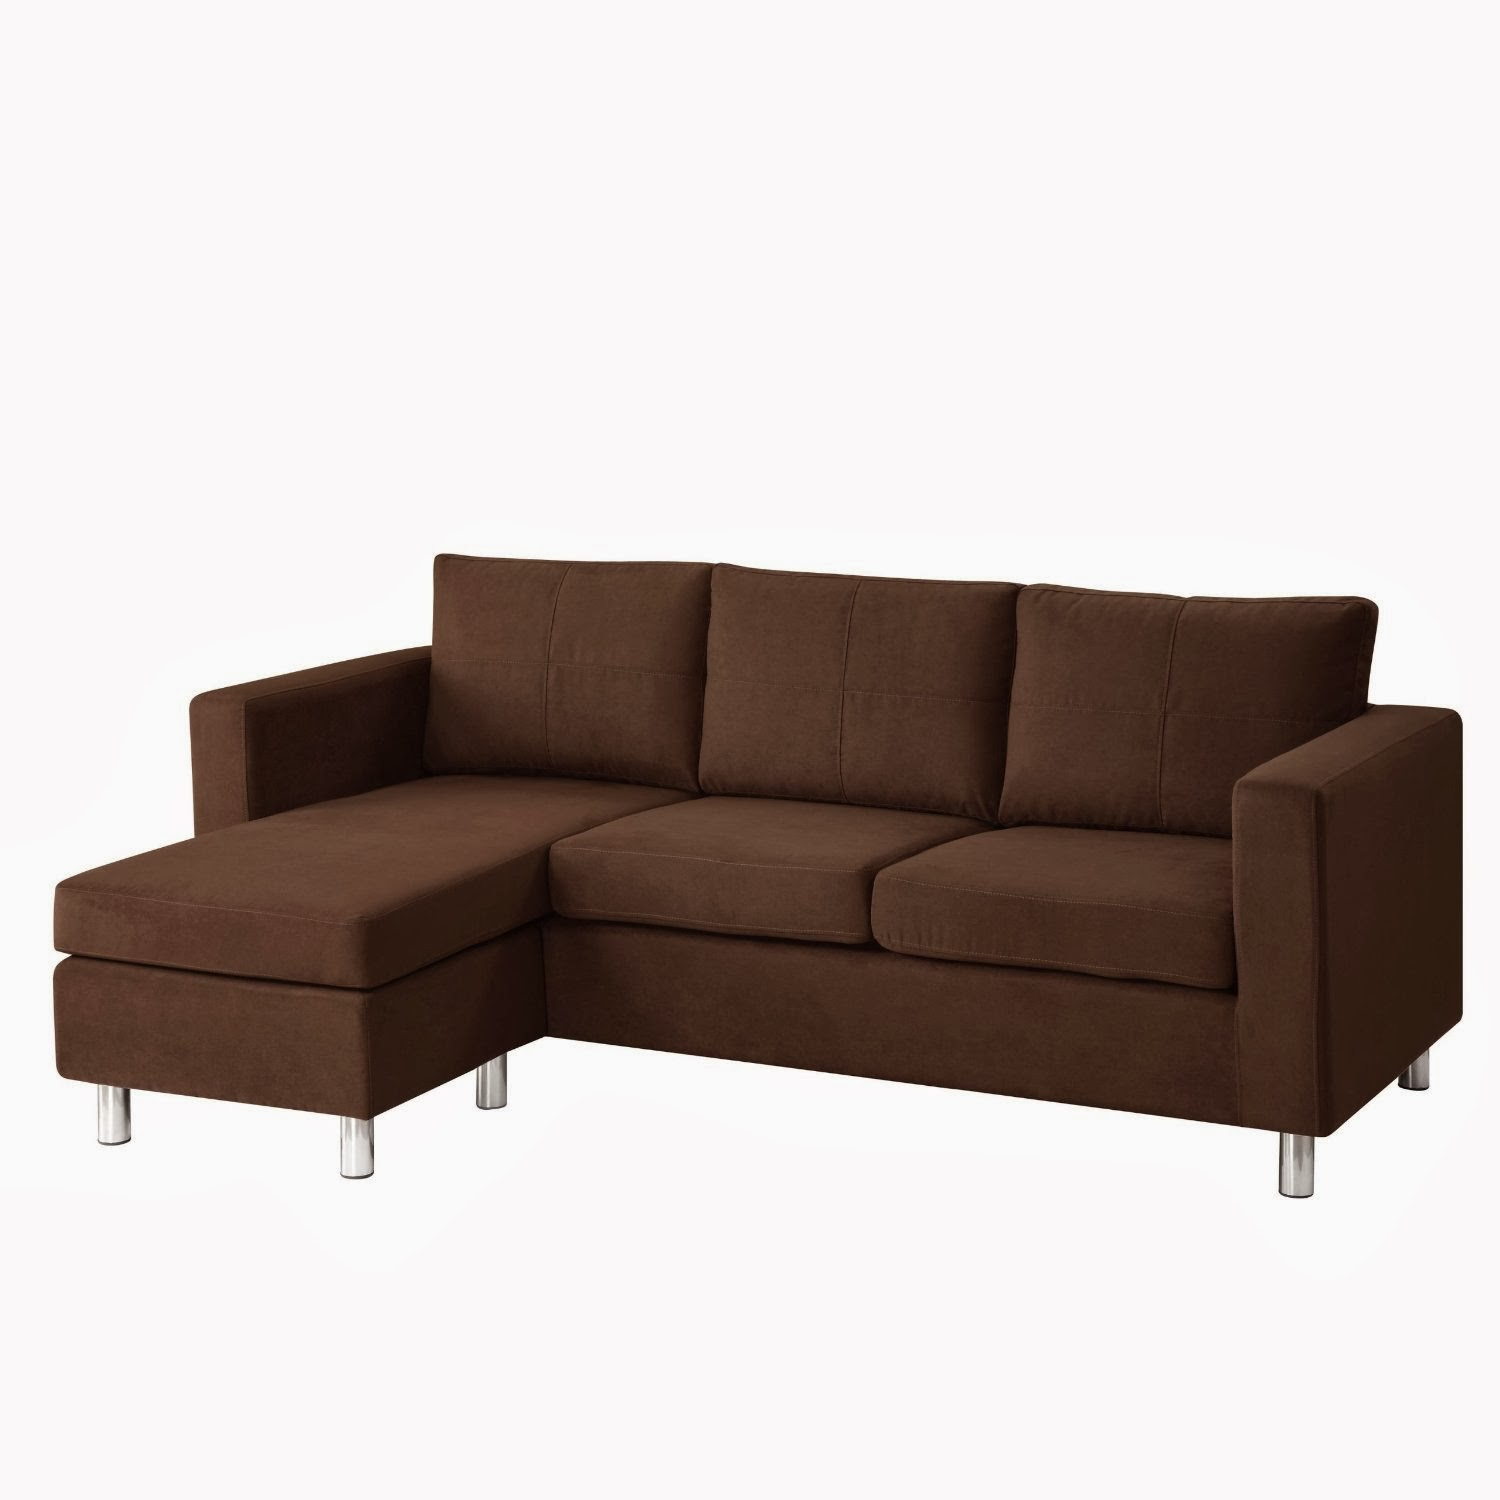 Small Sectional Sofas Reviews Small Sectional Sofa With Chaise